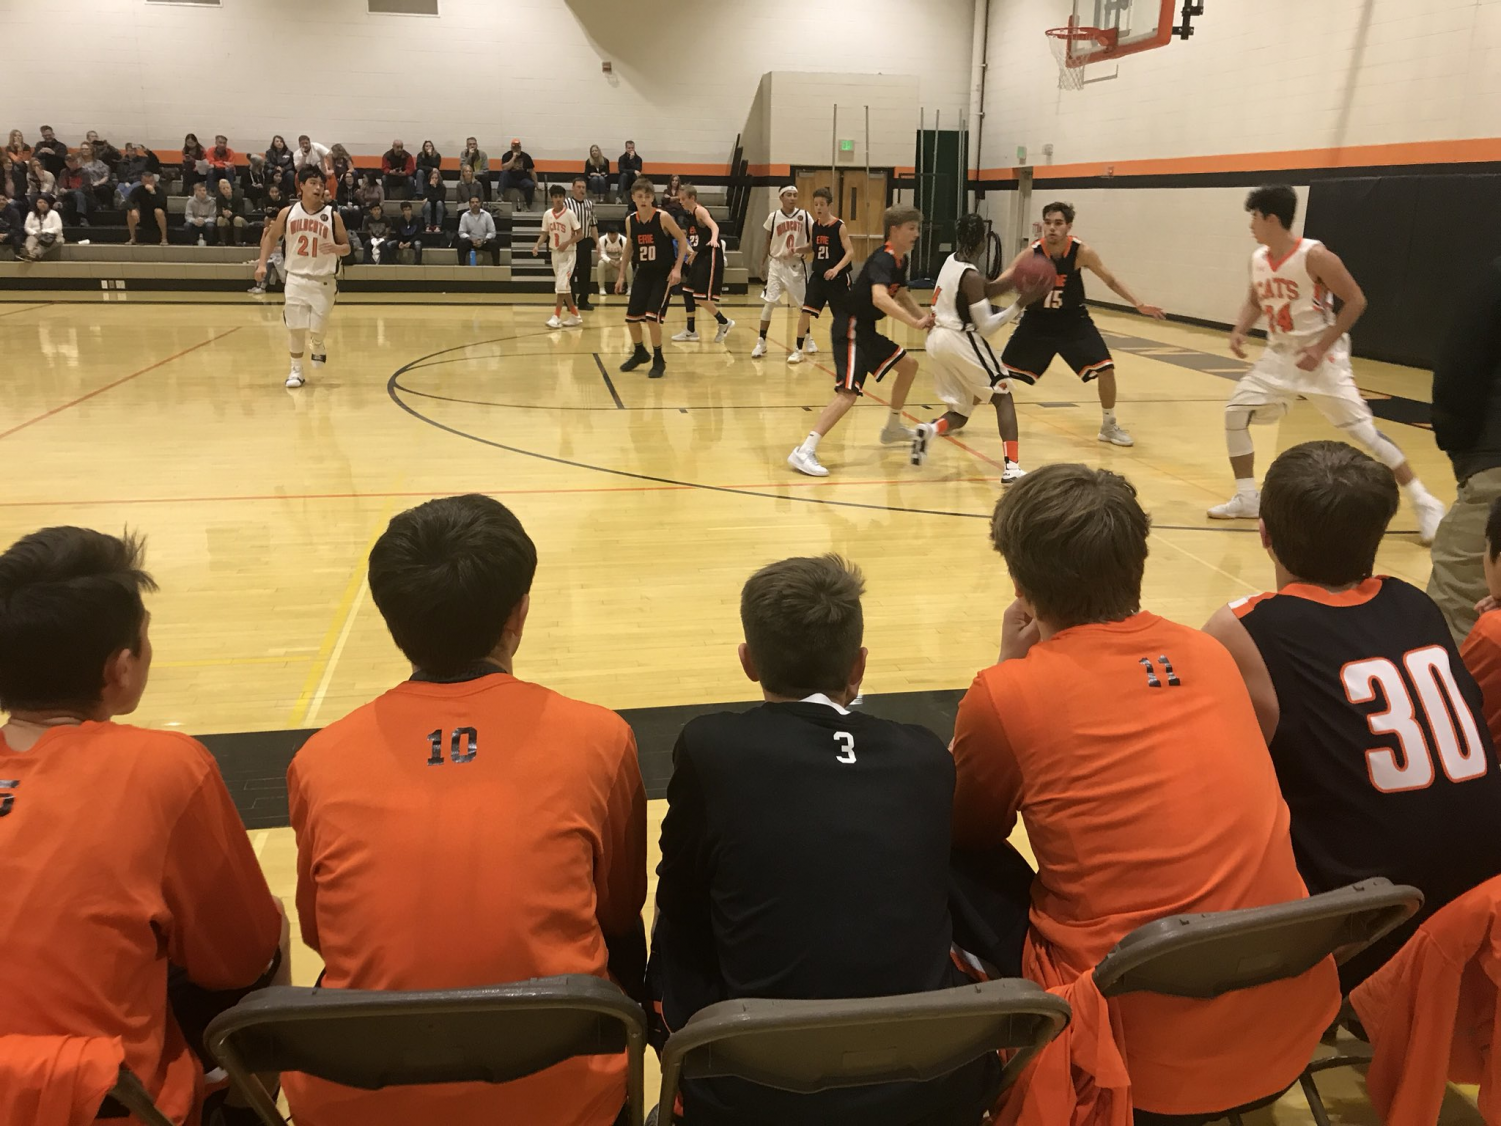 EHS Boys C-Team plays against the Greely Central Wildcats. Photo from @erieboysbball Twitter.